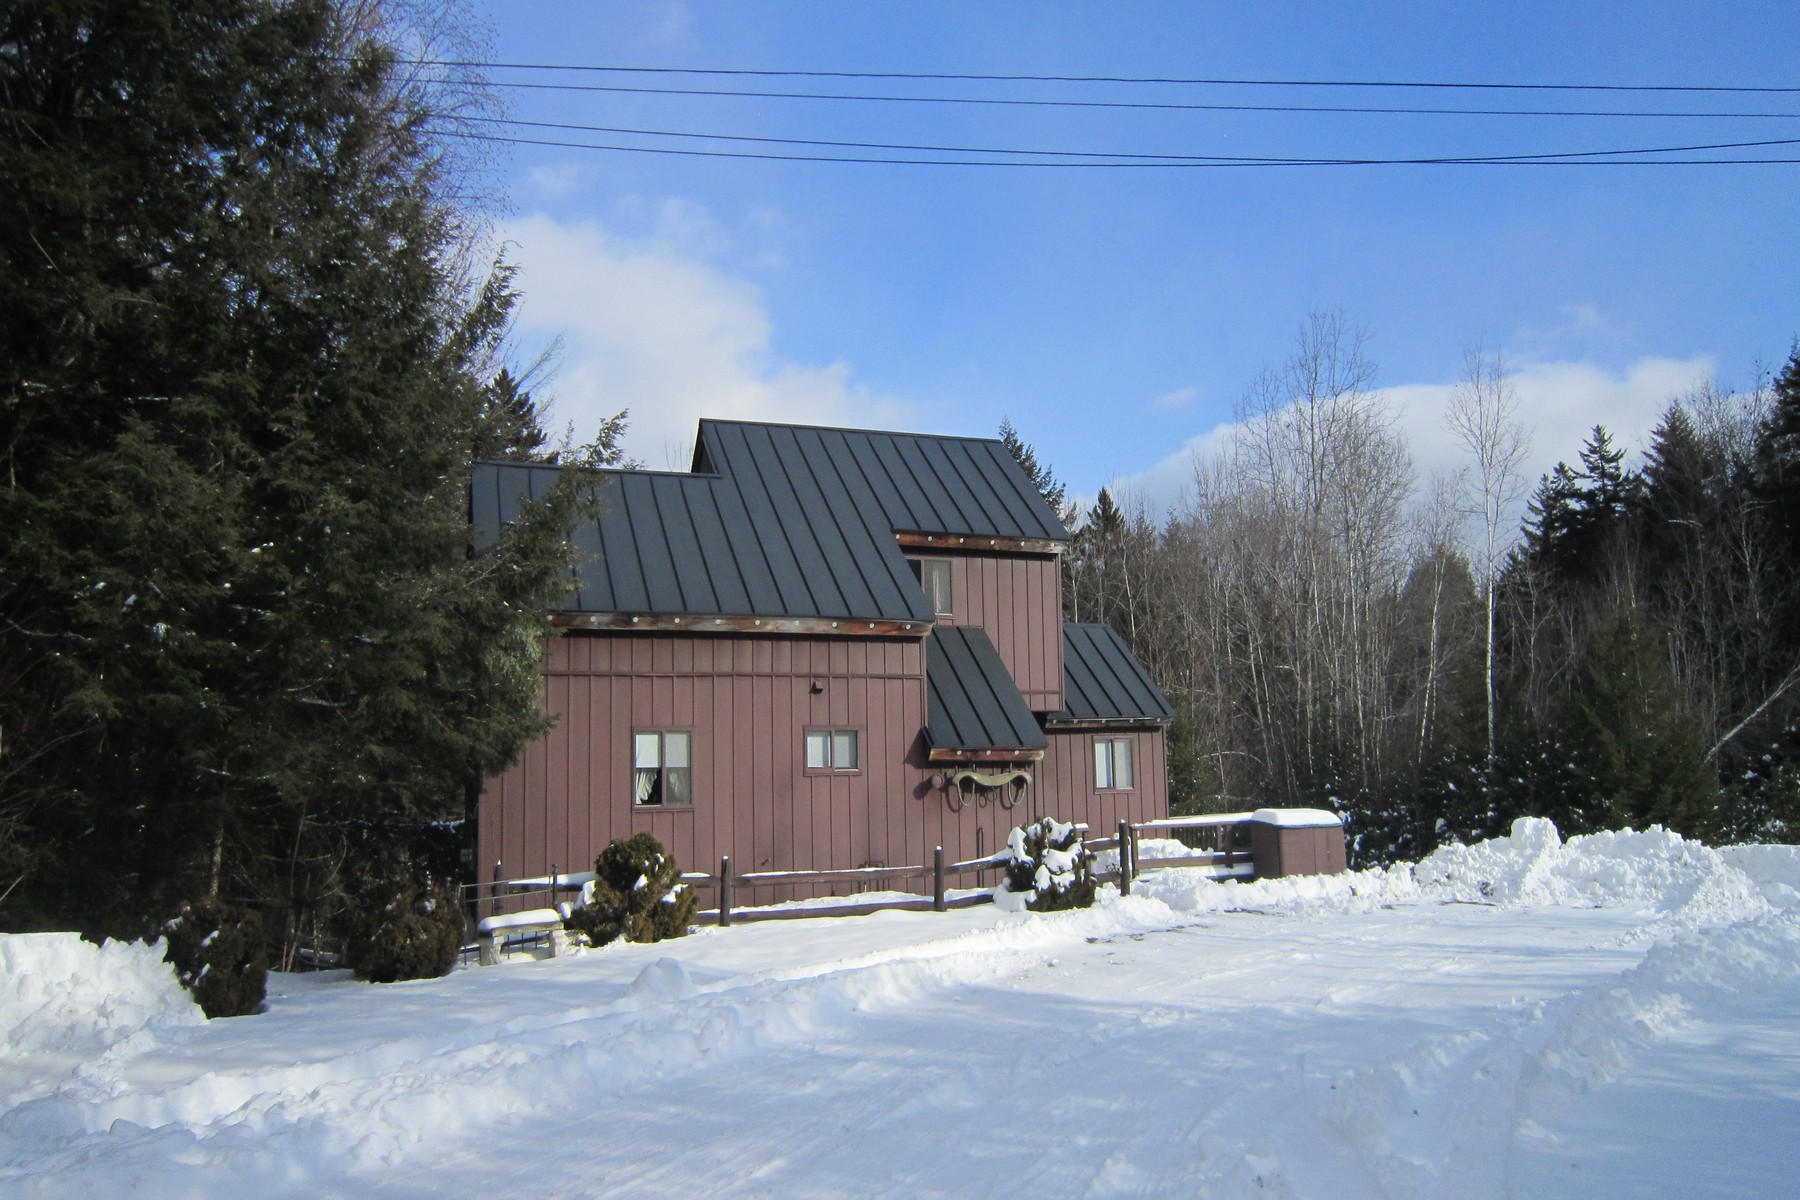 Moradia para Venda às Great Location! Between Okemo & Killington 1212 Dublin Rd Plymouth, Vermont, 05149 Estados Unidos